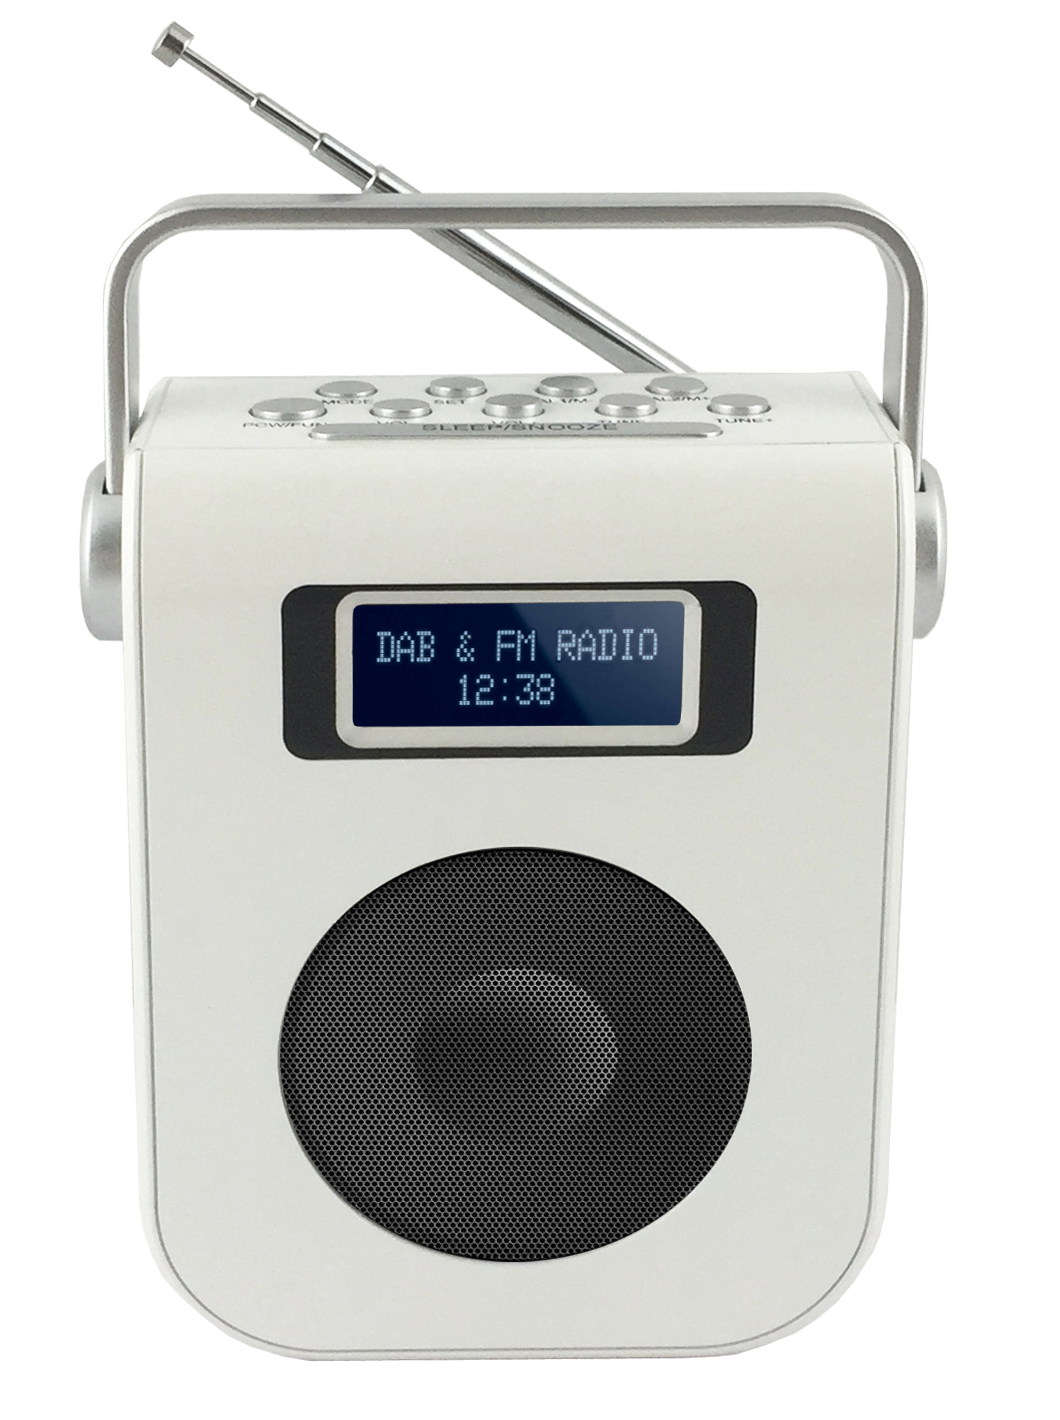 Multi-function DAB Radios with FM wave band